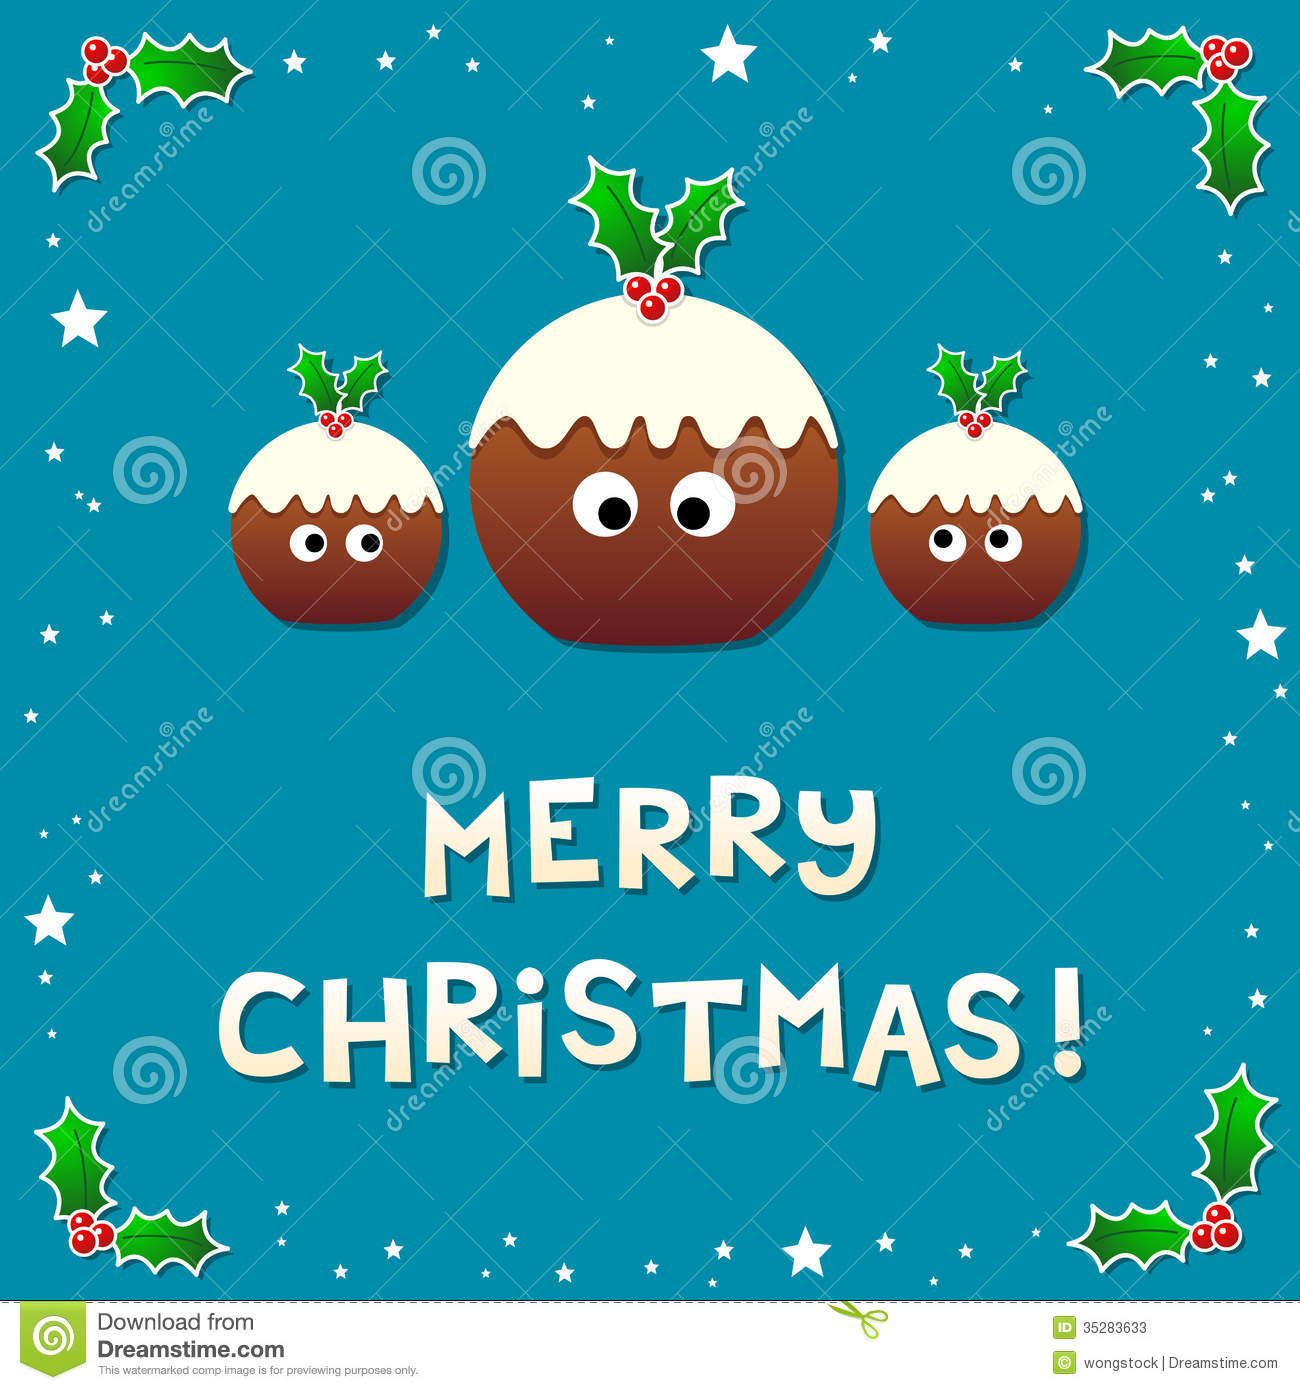 Cute Christmas Puddings Wishing A Merry Christmas Stock Vector ...